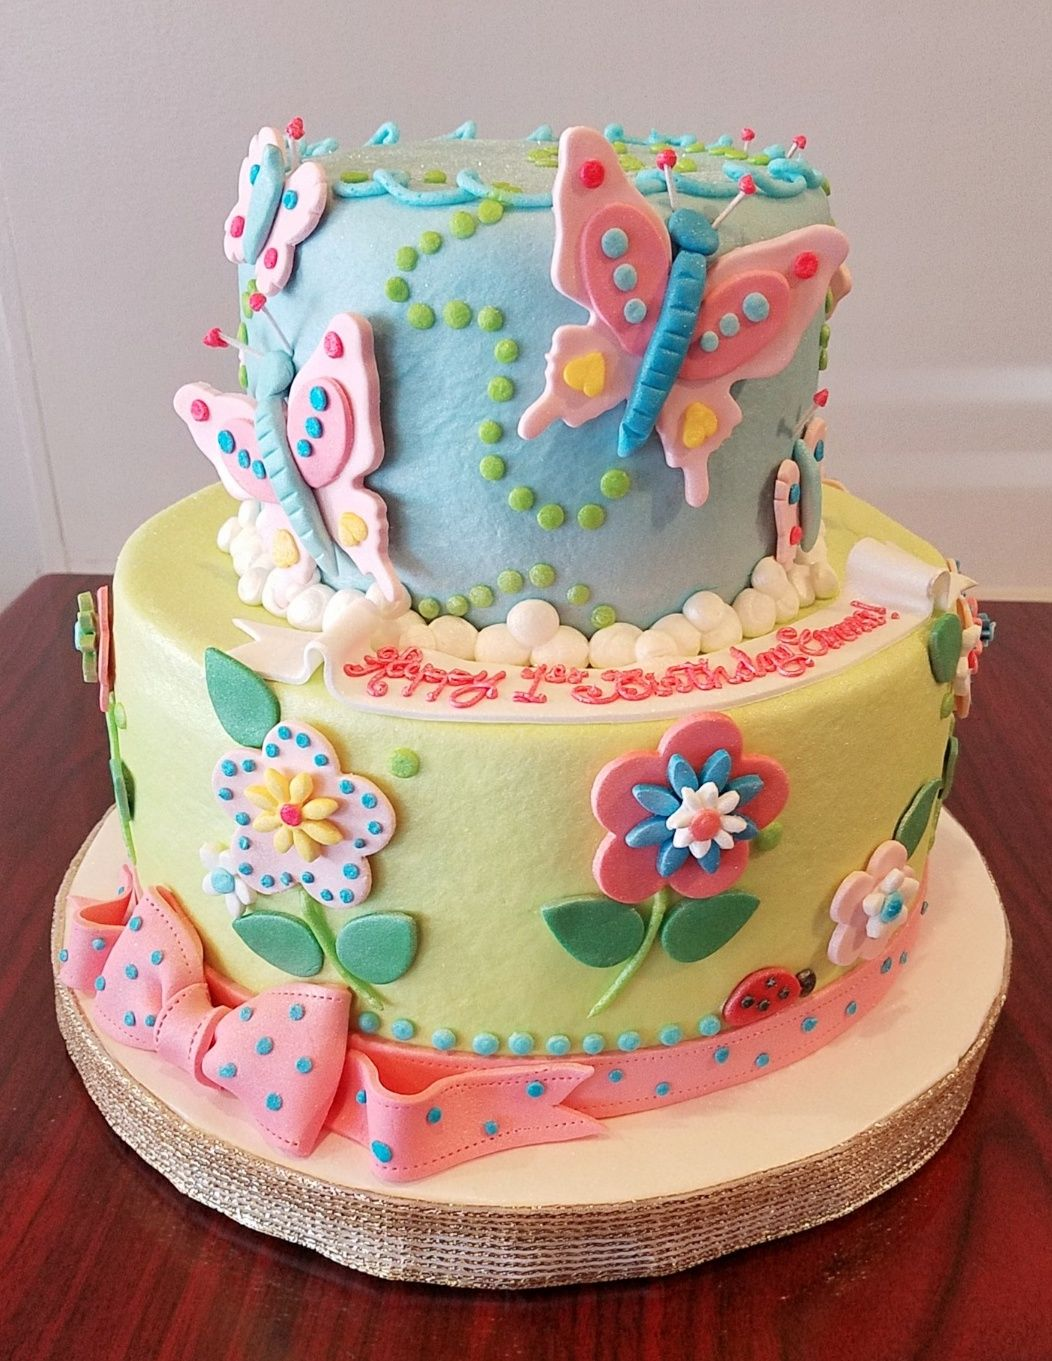 Peachy Spring Butterflies And Flowers Cake Adrienne Co Bakery Funny Birthday Cards Online Barepcheapnameinfo